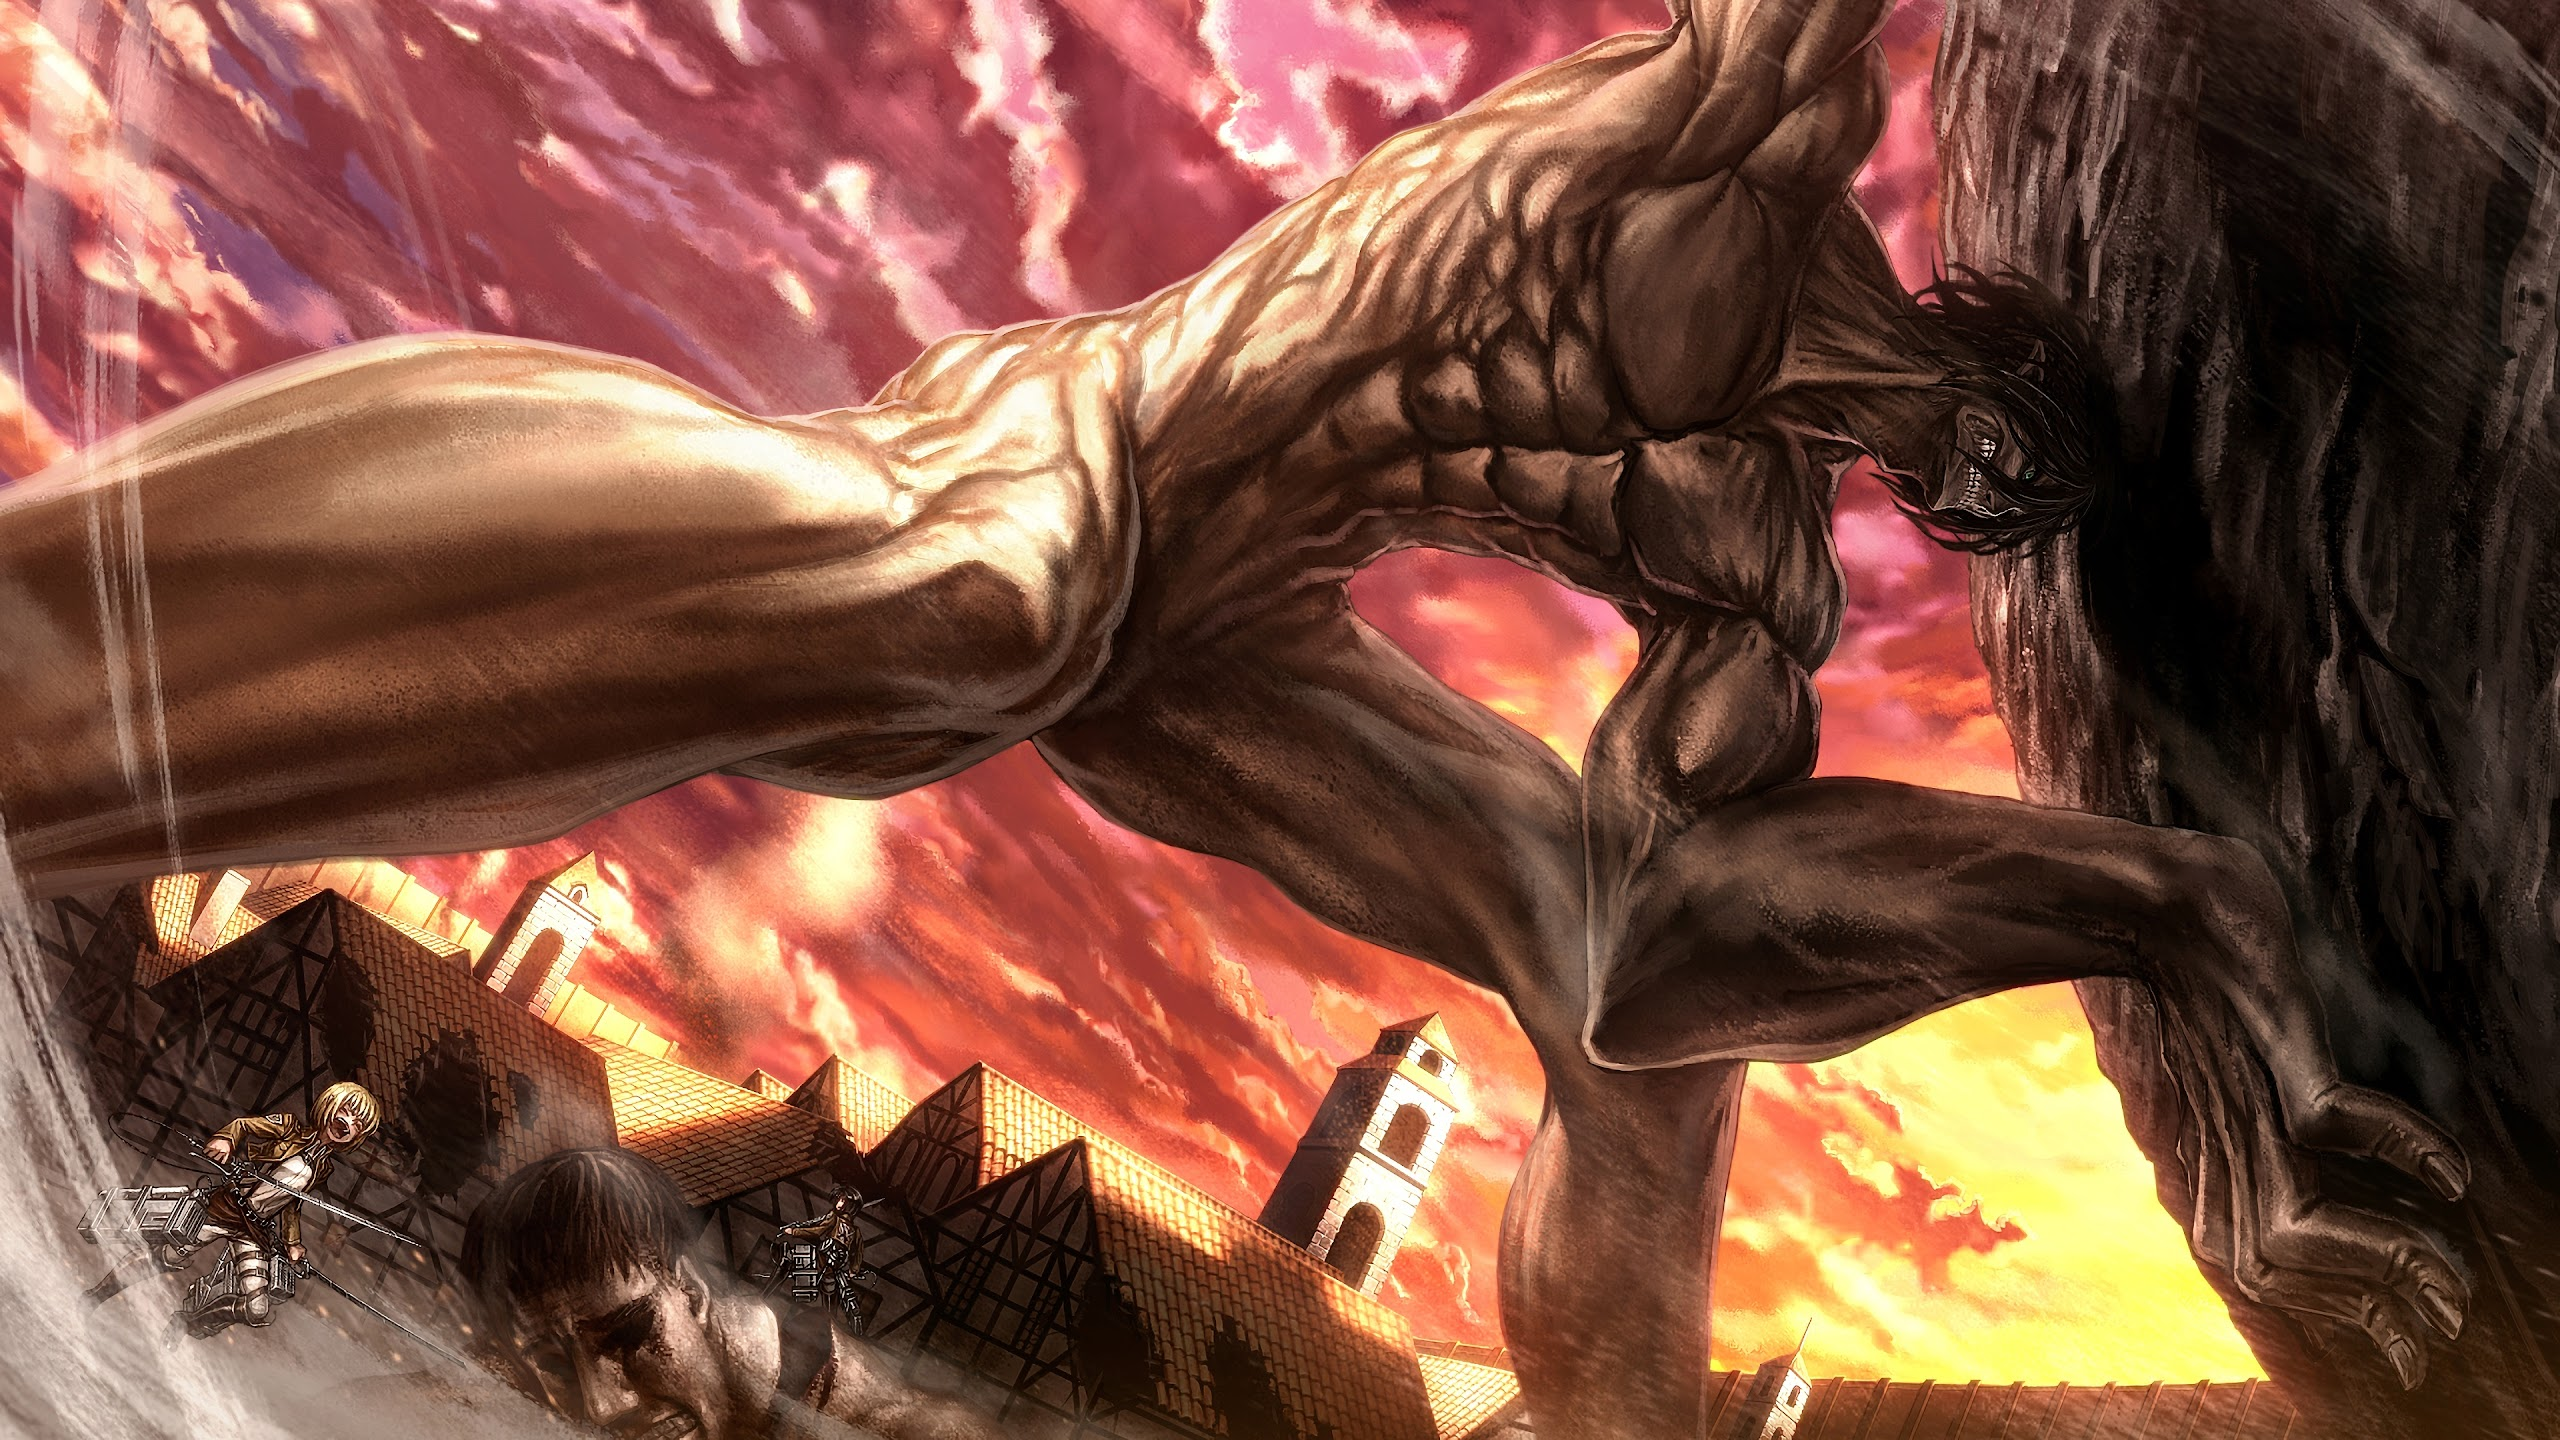 This item has been removed from the community. 50 ++ Attack On Titan Dual Monitor Wallpaper ~ Joanna-dee.com